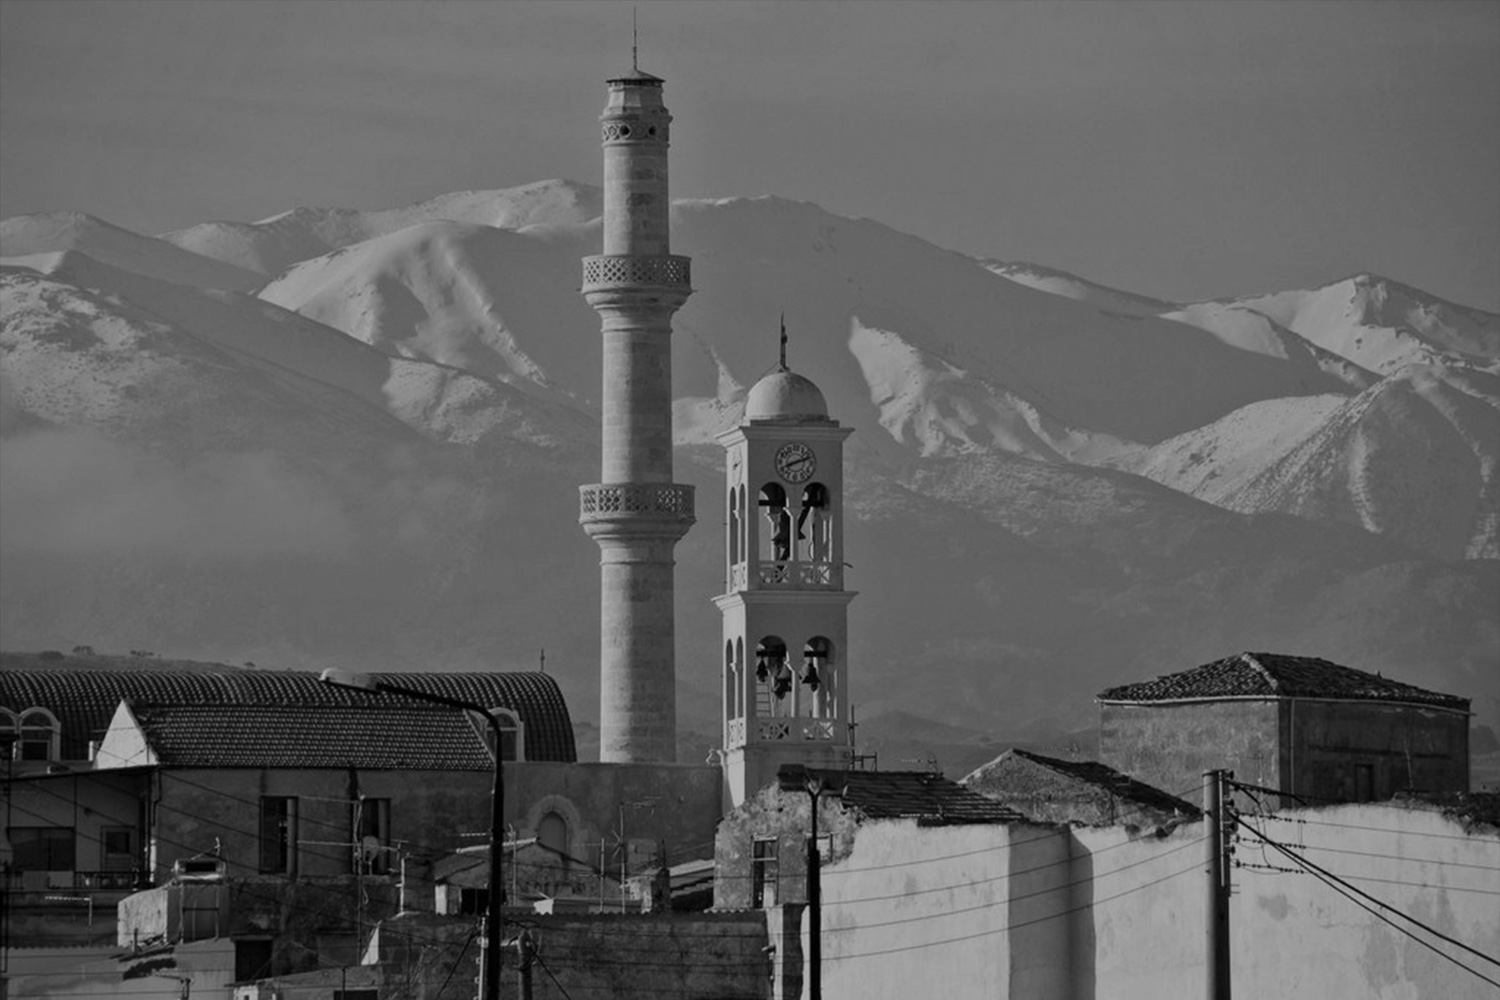 Black and white view of Minaret from a distance